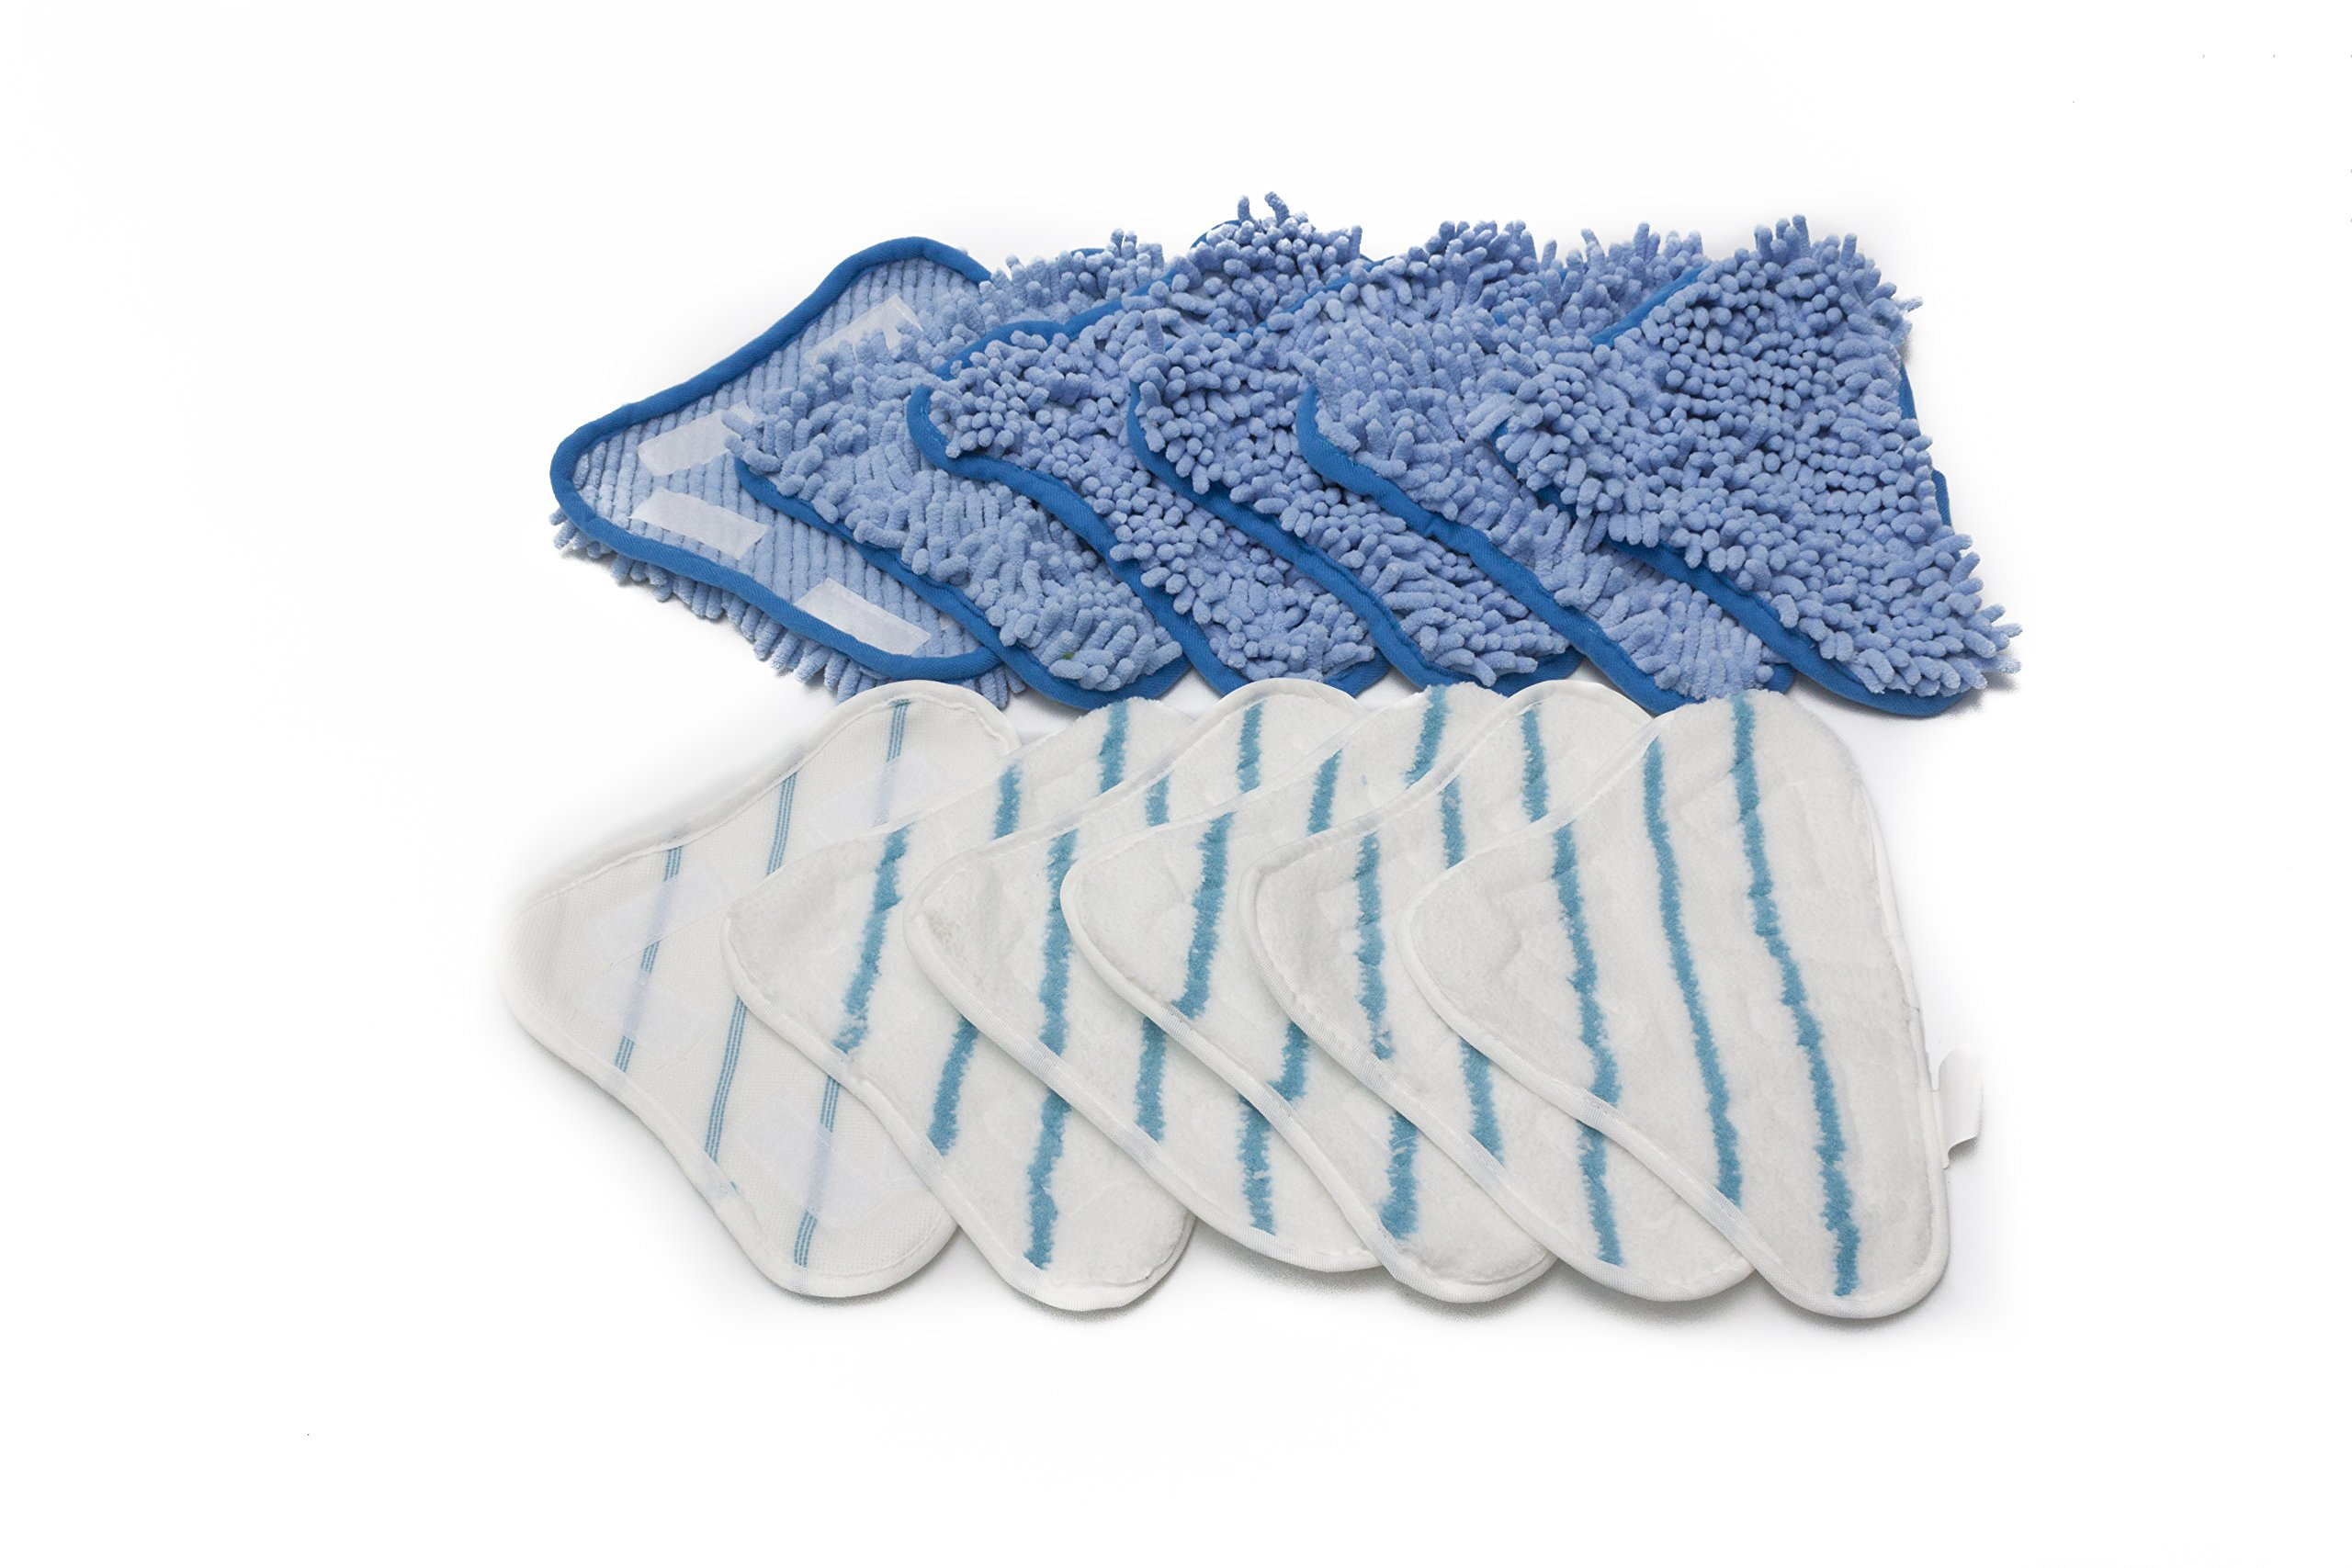 LTWHOME Replacement Microfiber Mop Pads and Coral Pads Set Fit For H2O Steam Mop X5 (Pack of 12) by LTWHOME (Image #1)